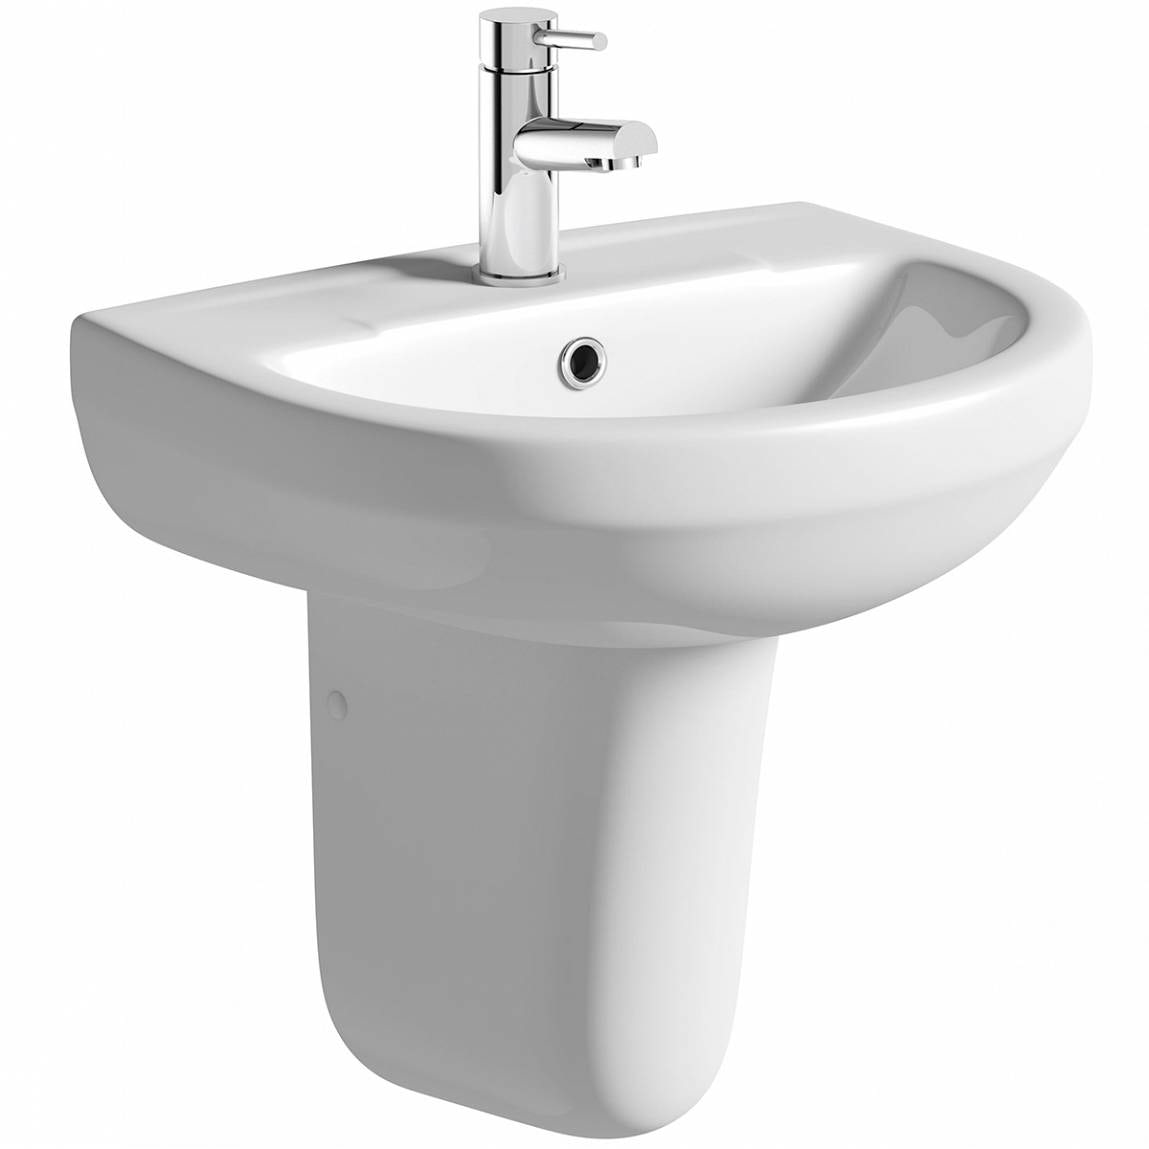 Orchard Eden 1 tap hole semi pedestal basin 550mm with waste